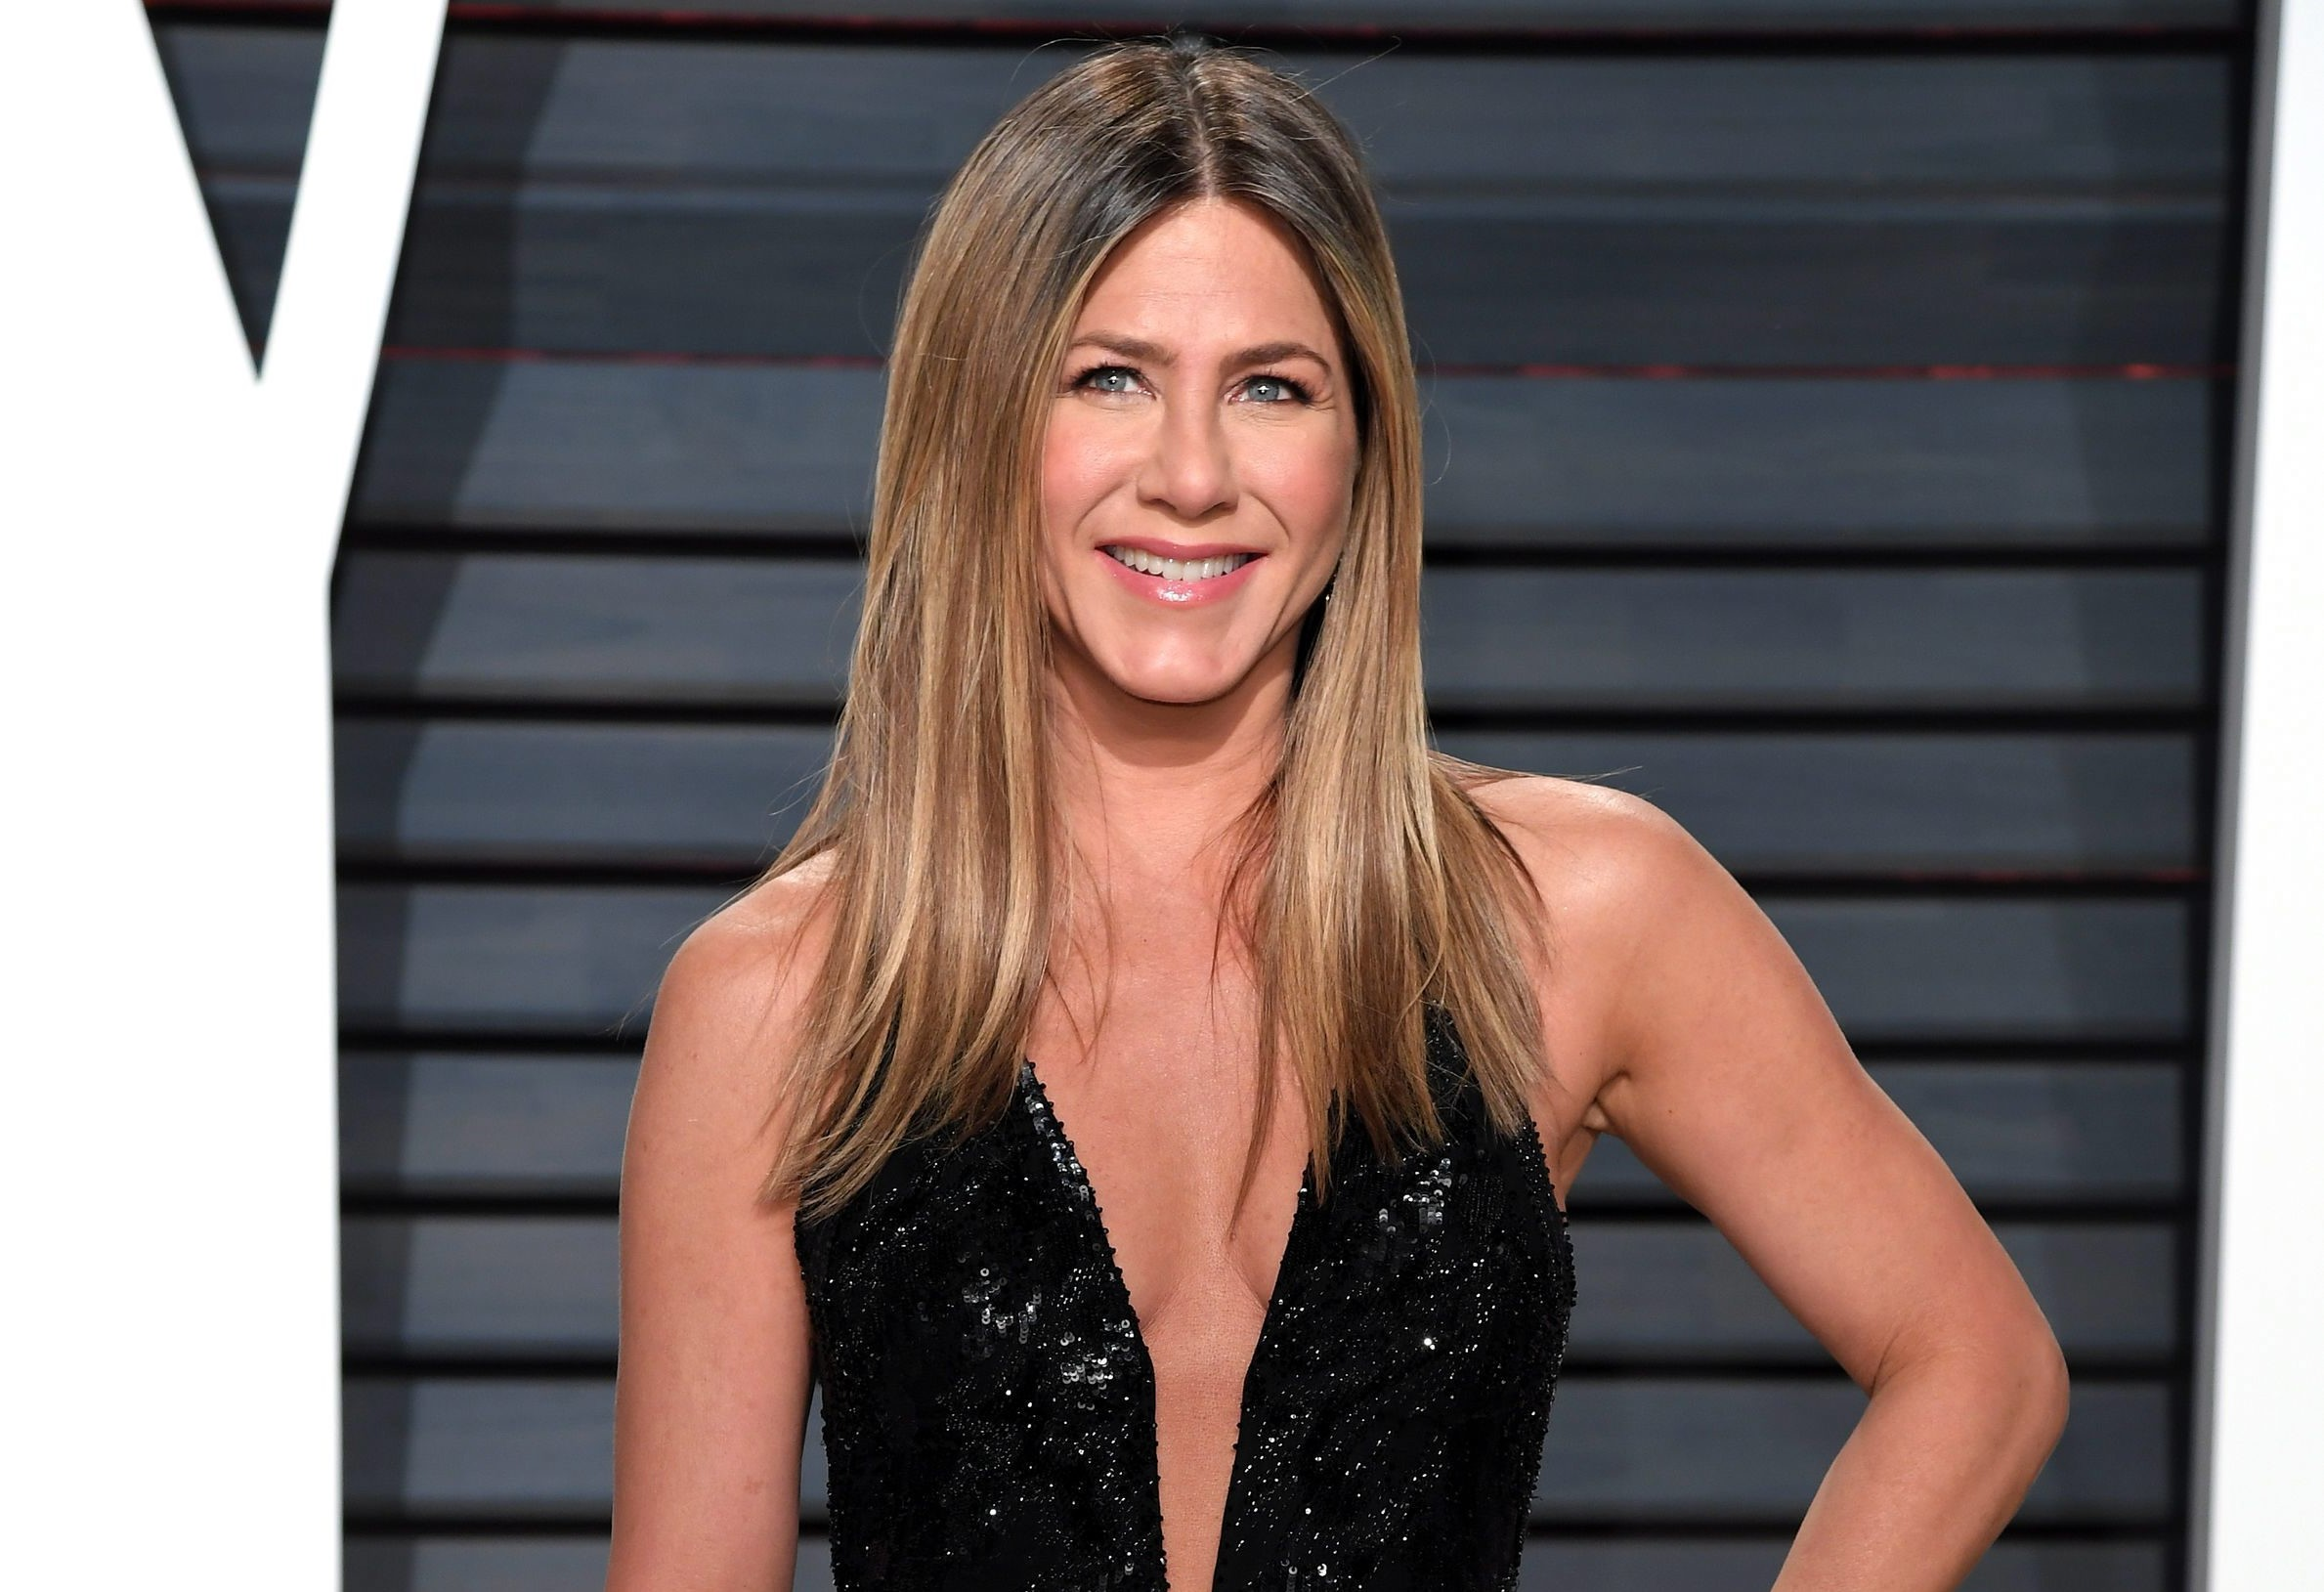 ¿Eterna juventud? - Página 2 Jennifer-aniston-port-2018